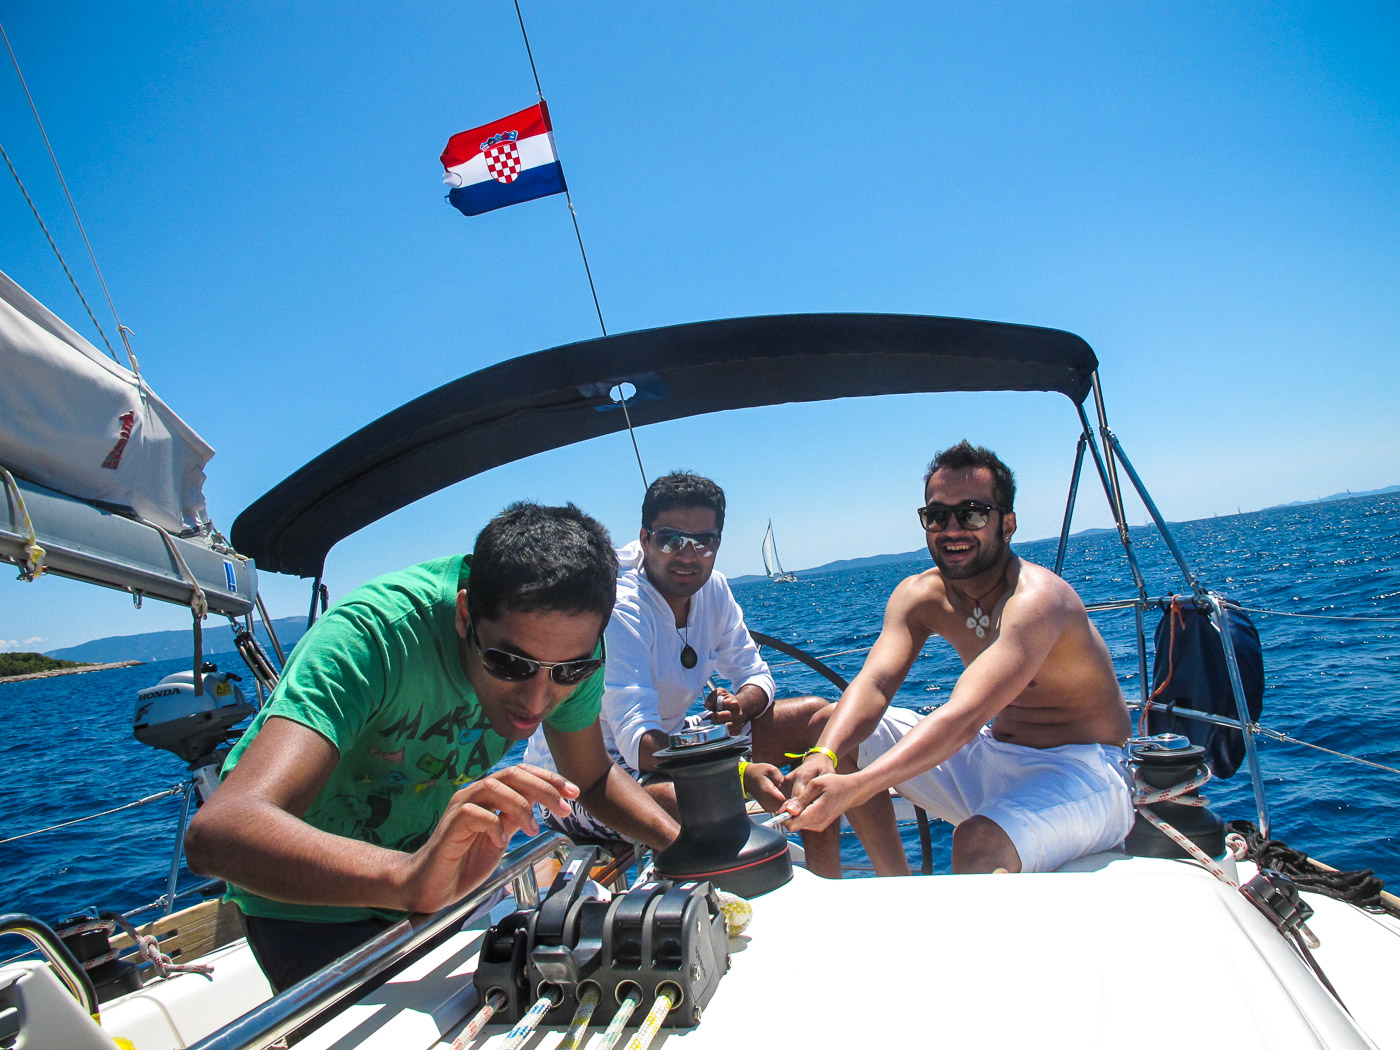 The_Yacht_Week_Sailing_Boat_Croatia_Europe_Summer_Trip_Party_Luxury_Lifestyle_SassyPilgrim_Travel_Blog_Indian_Blogger_Solo_Traveler_Female_Hvar_Split__Kastella_Skedro_Soltar_Viz_Zadar_Dubronvik